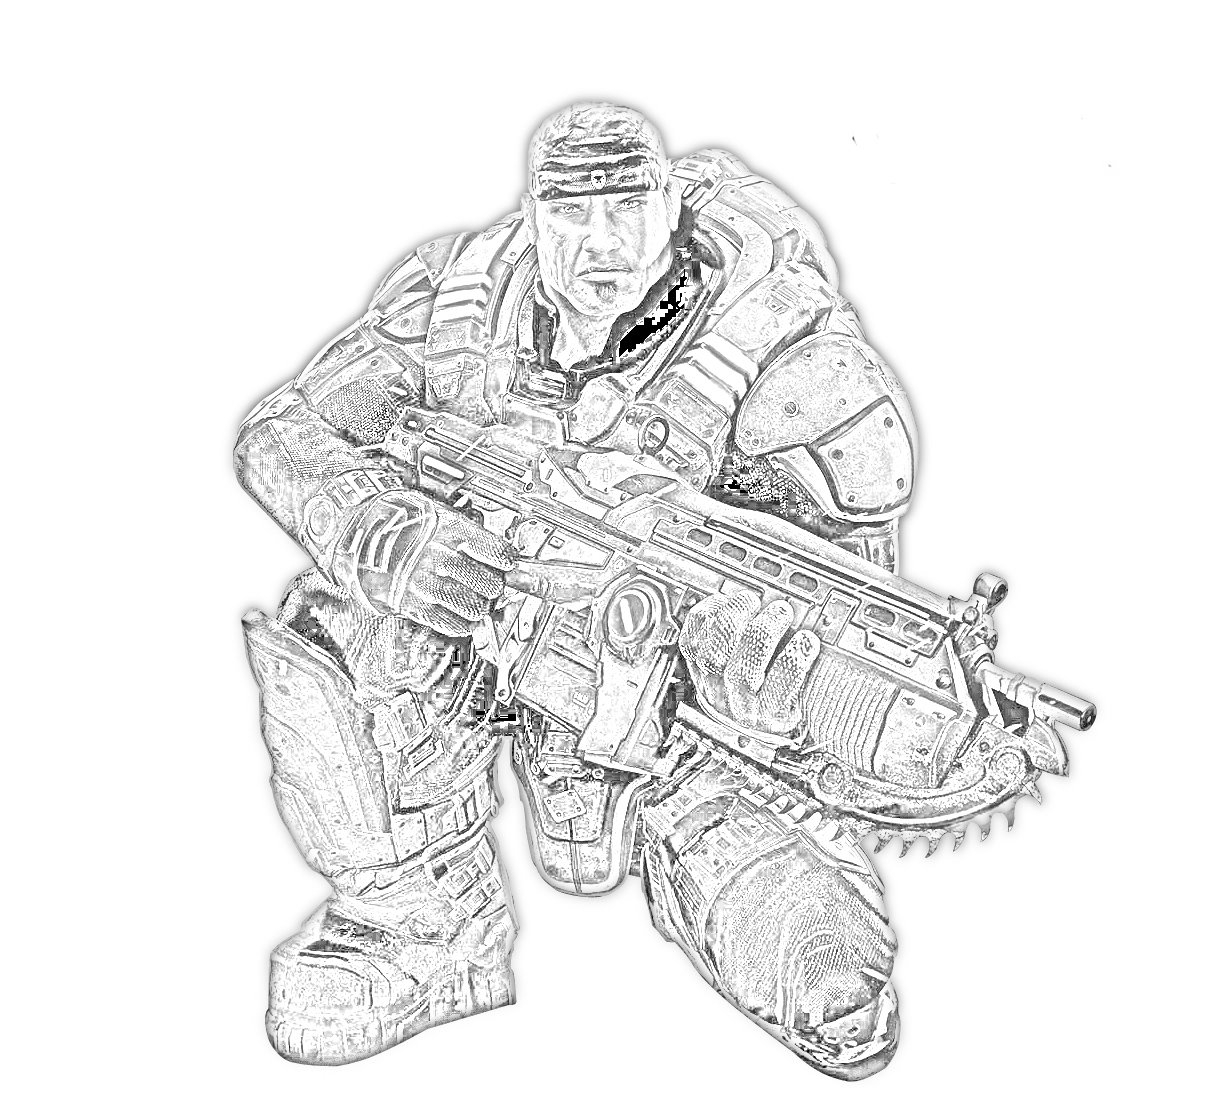 call of duty coloring pages - gowfrank